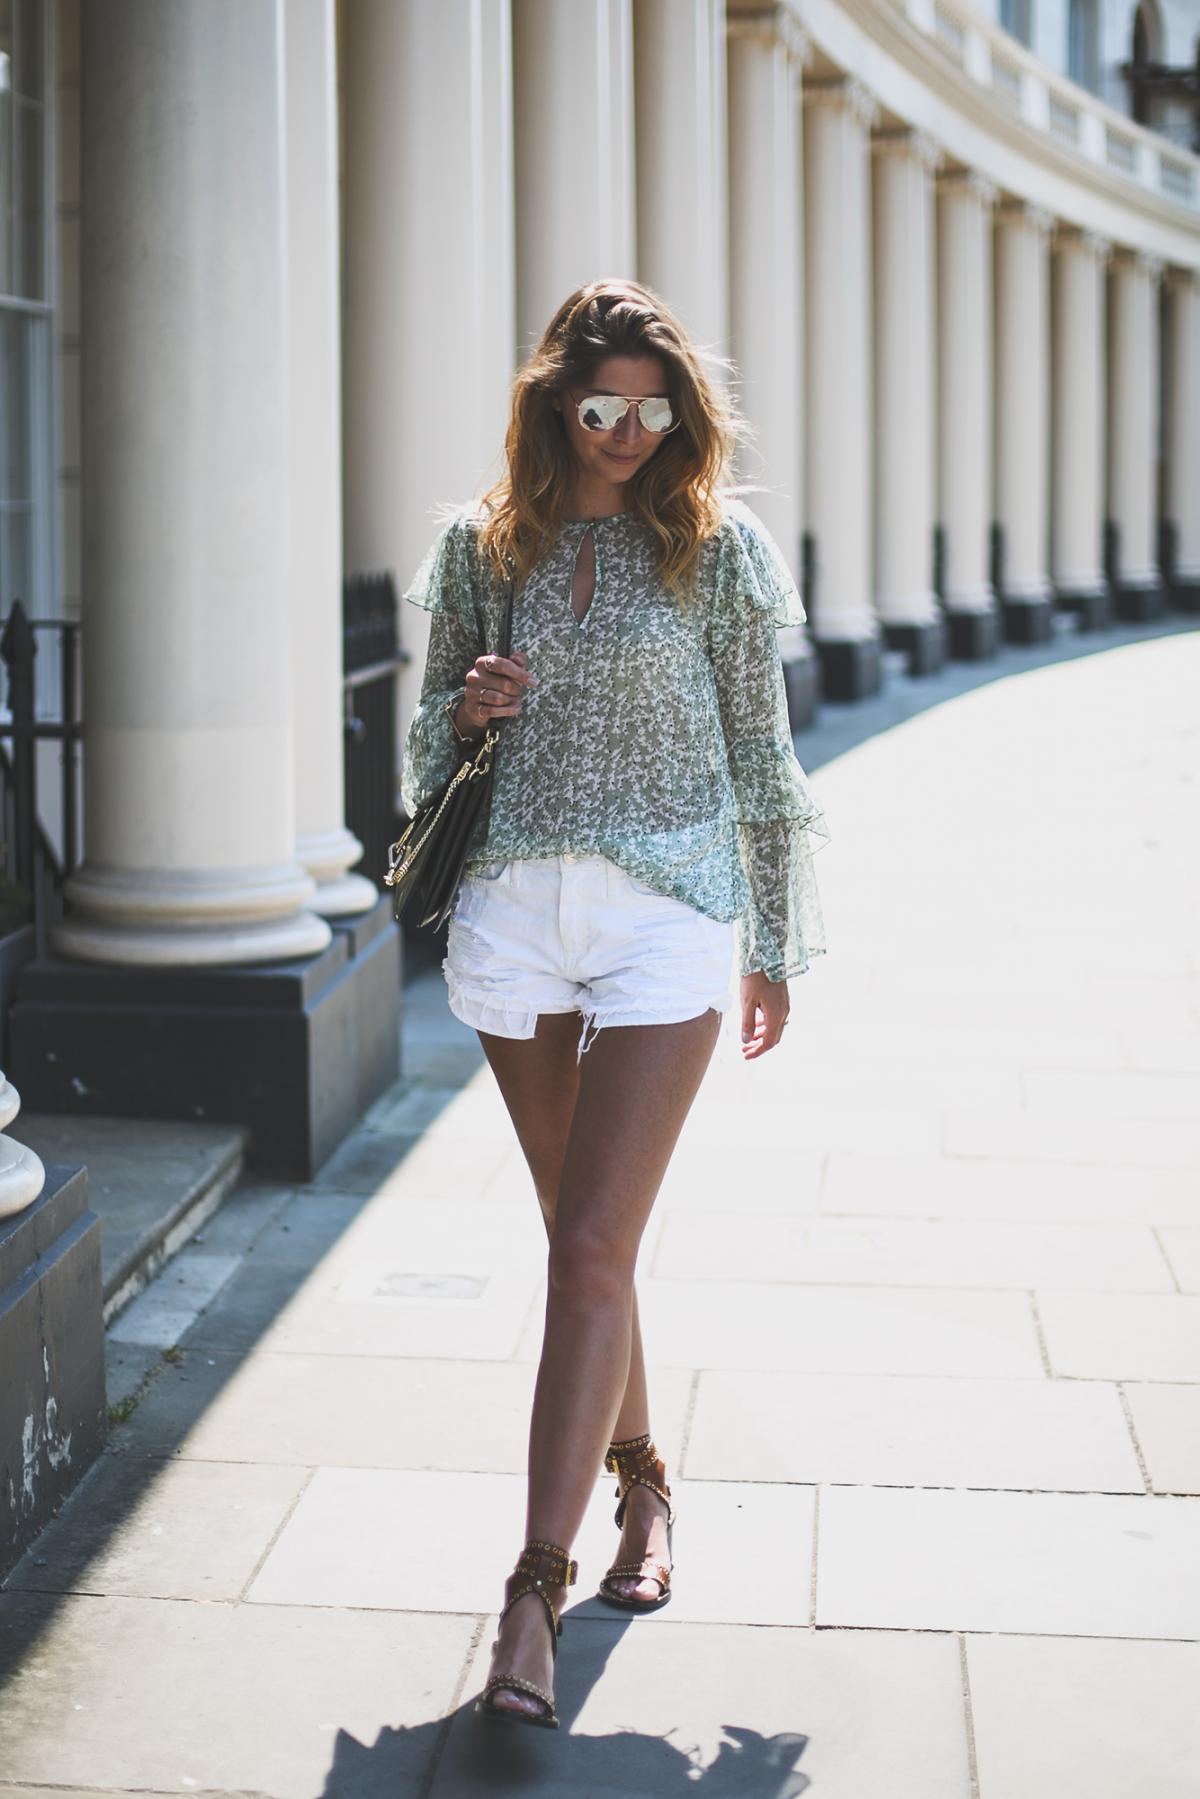 green printed floaty top with flare sleeves, white distressed denim shorts, khaki chloe faye bag, isabel marant tan leather sandals